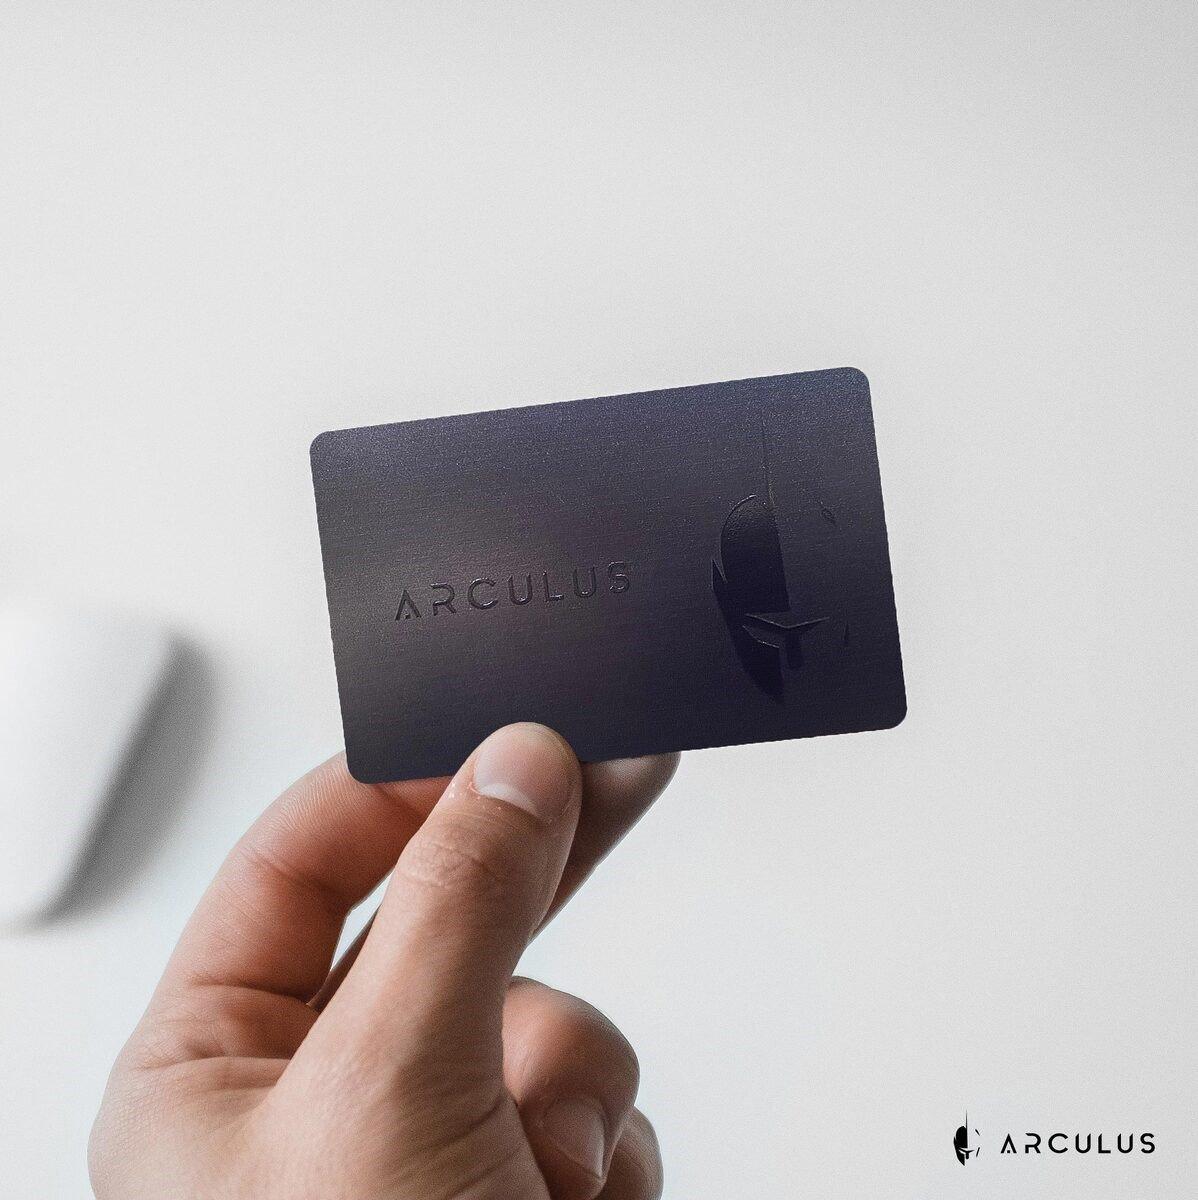 Arculus - A Hardware Wallet Bridging Security and Usability